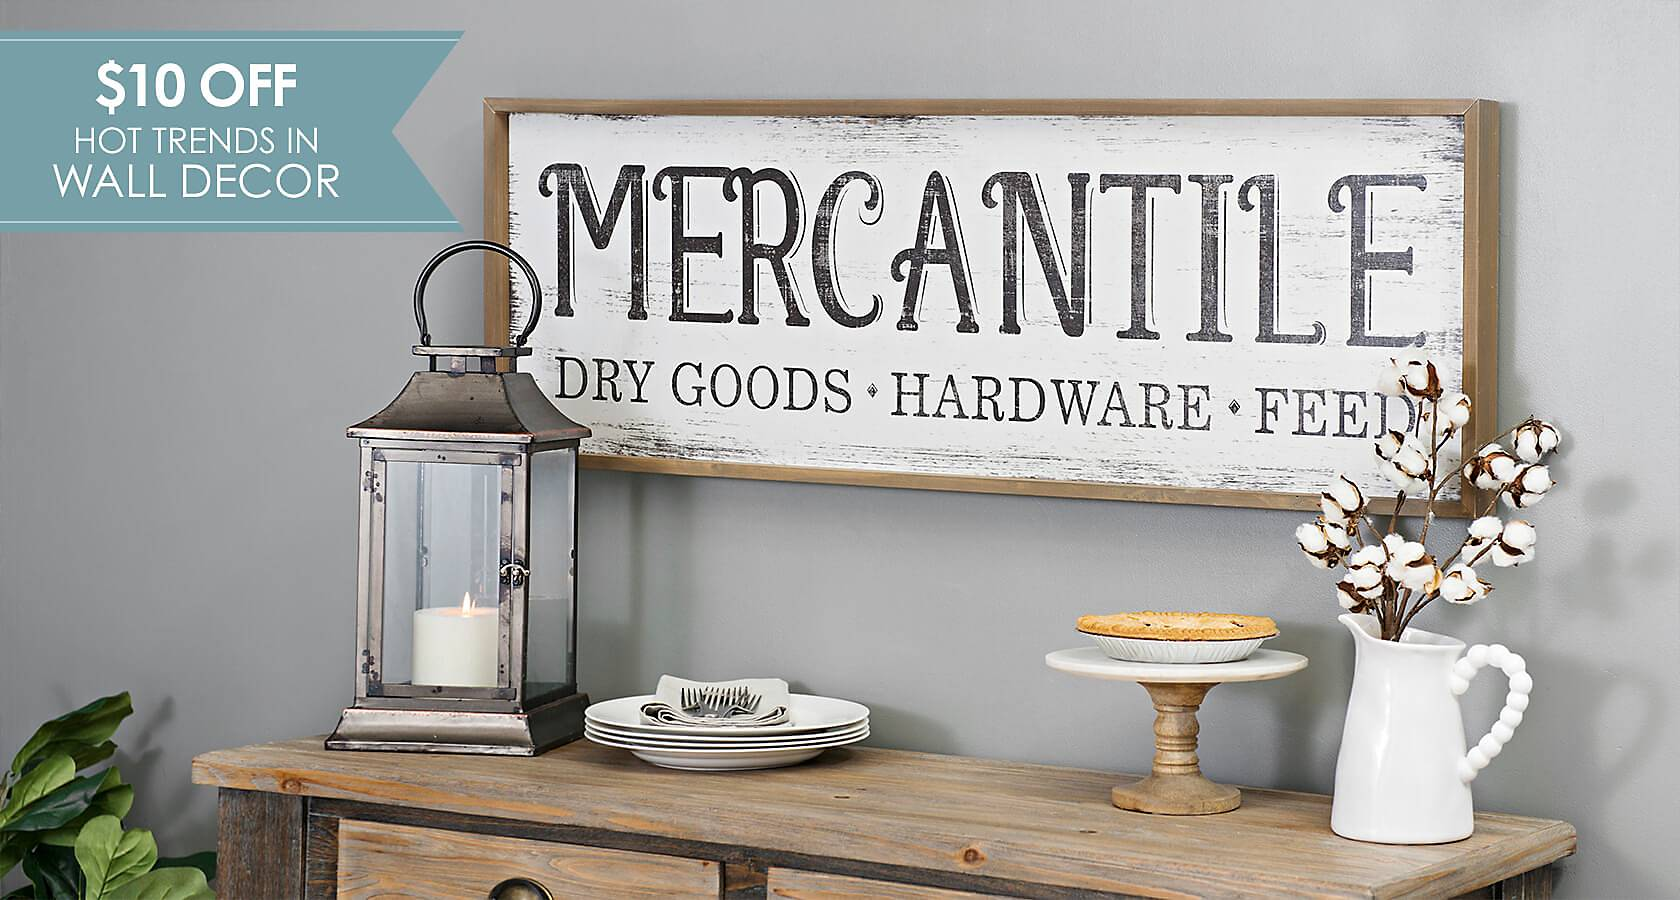 The uuma quot office registration table and center table will be in -  10 Off Hot Trends In Wall Decor Shop Now